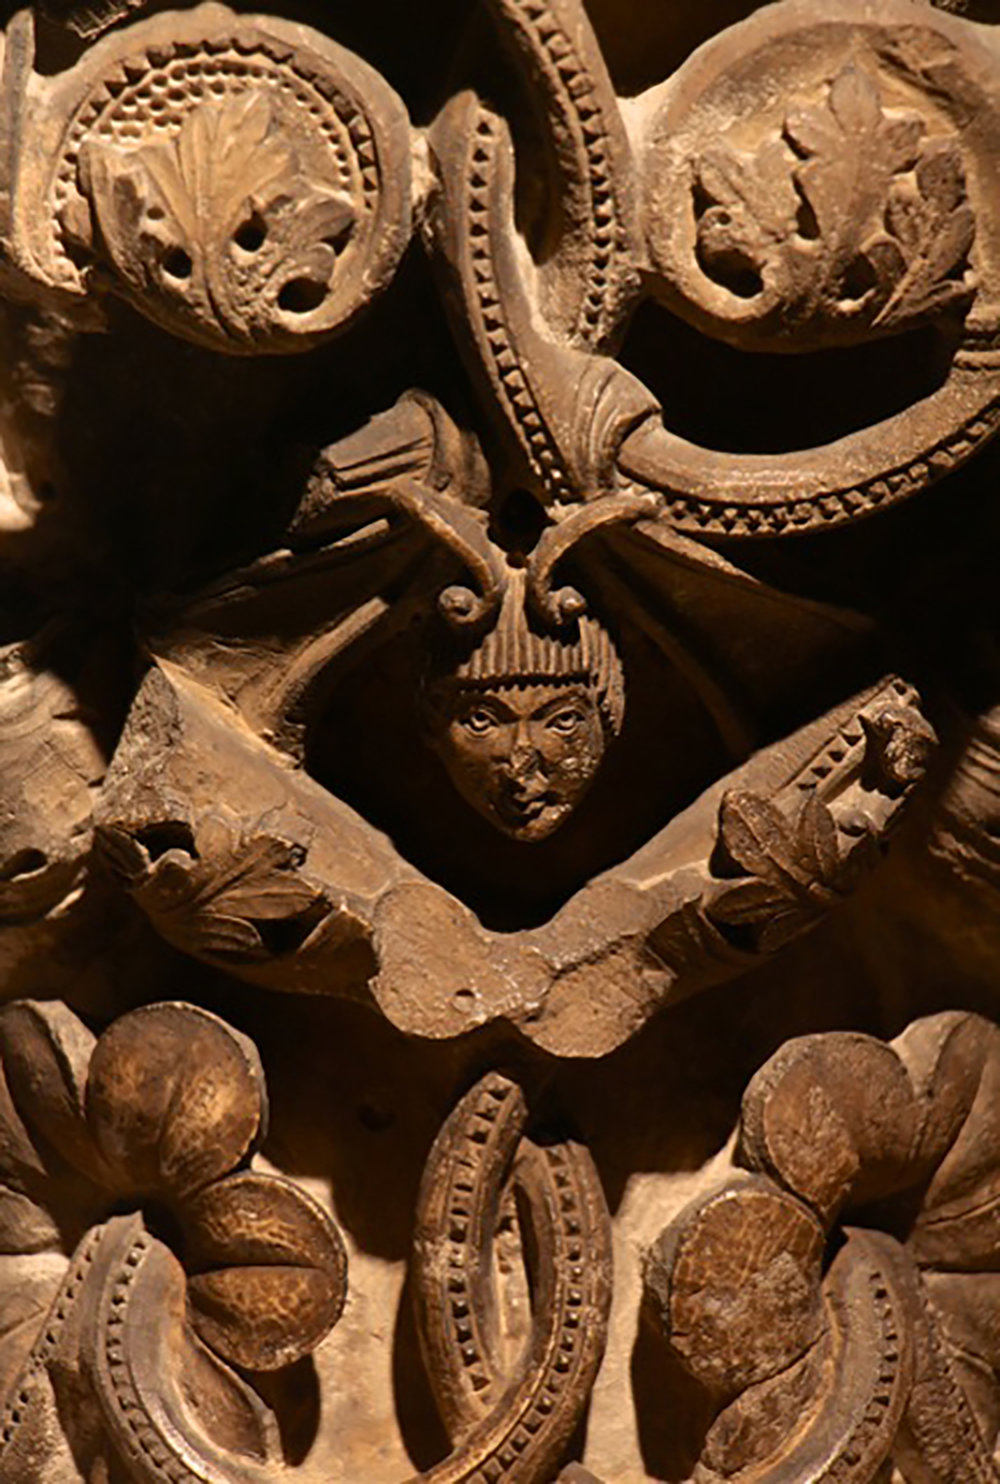 Romanesque capital from the cloister of Saint-Guilhem-le-Désert.